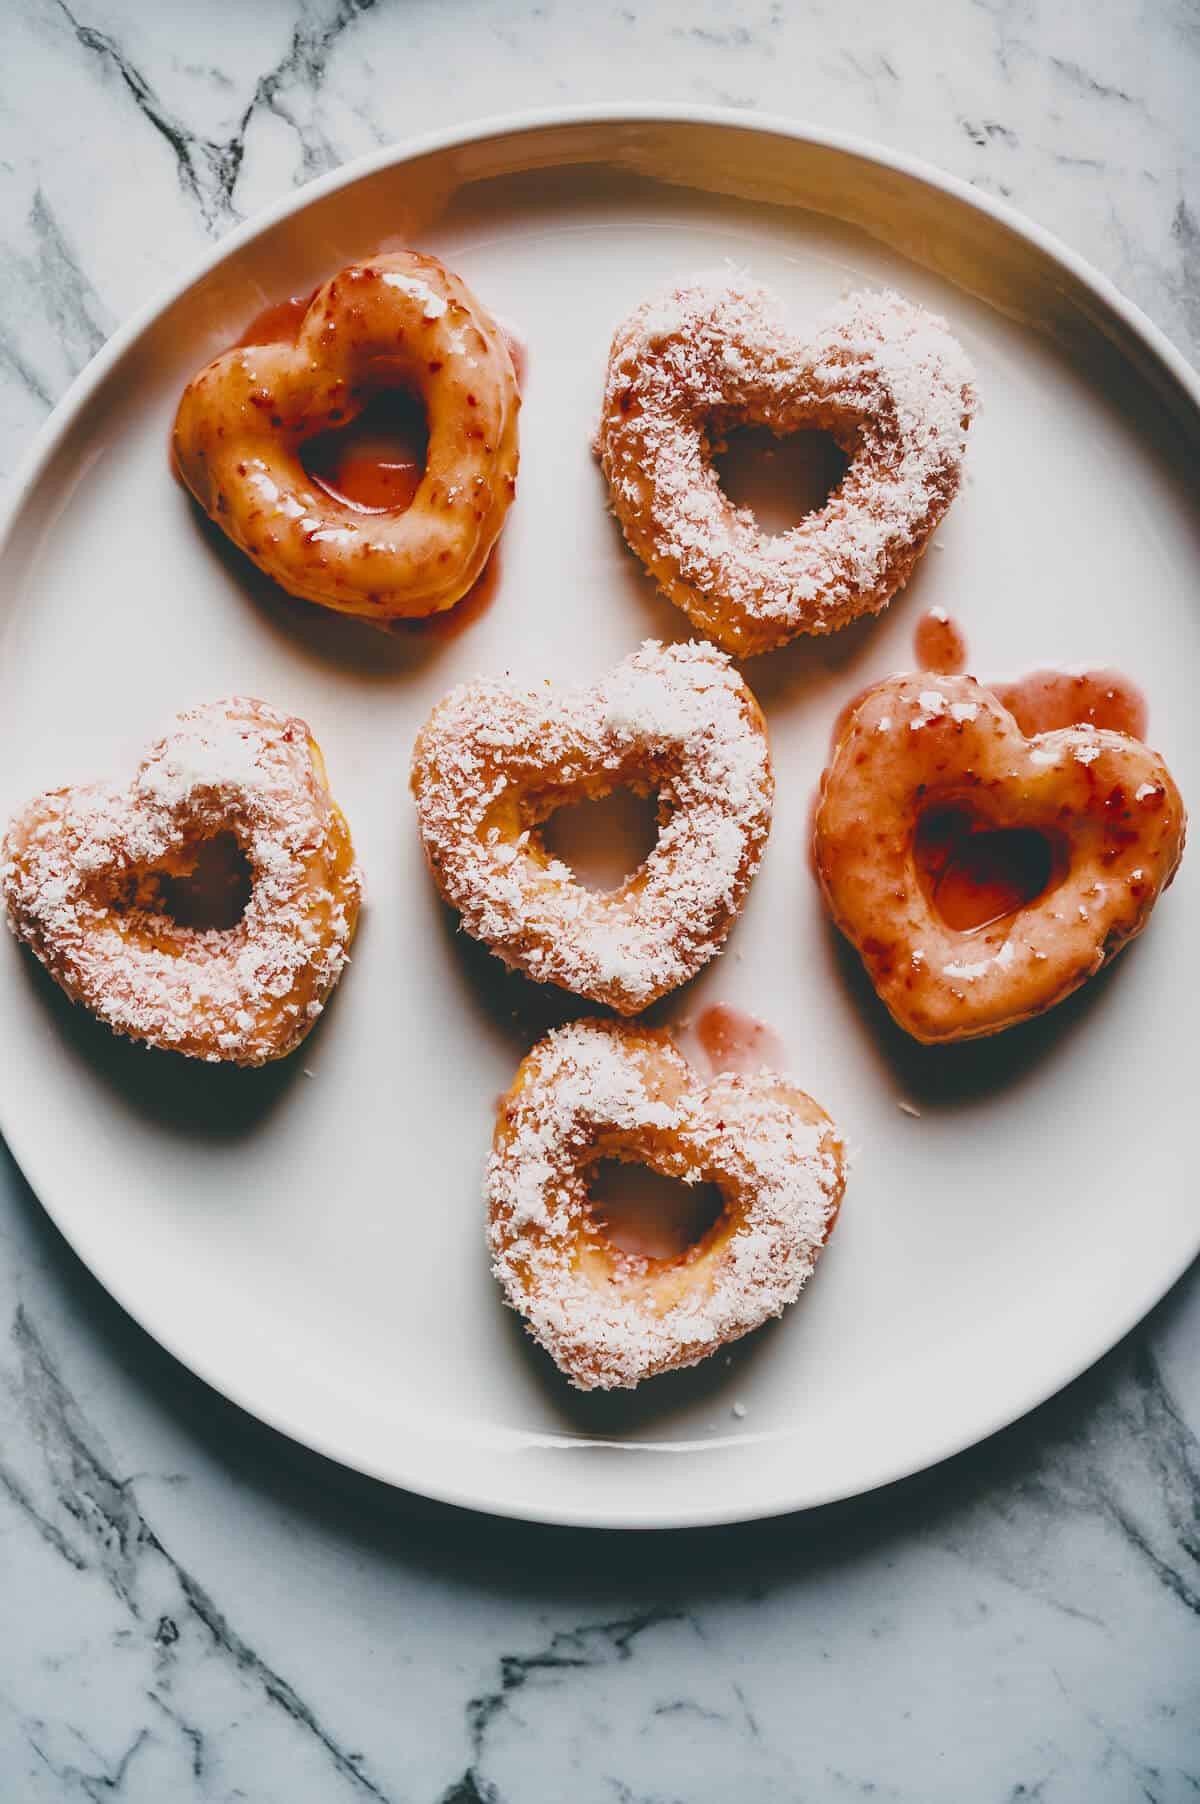 heart shaped doughnuts served on a white plate